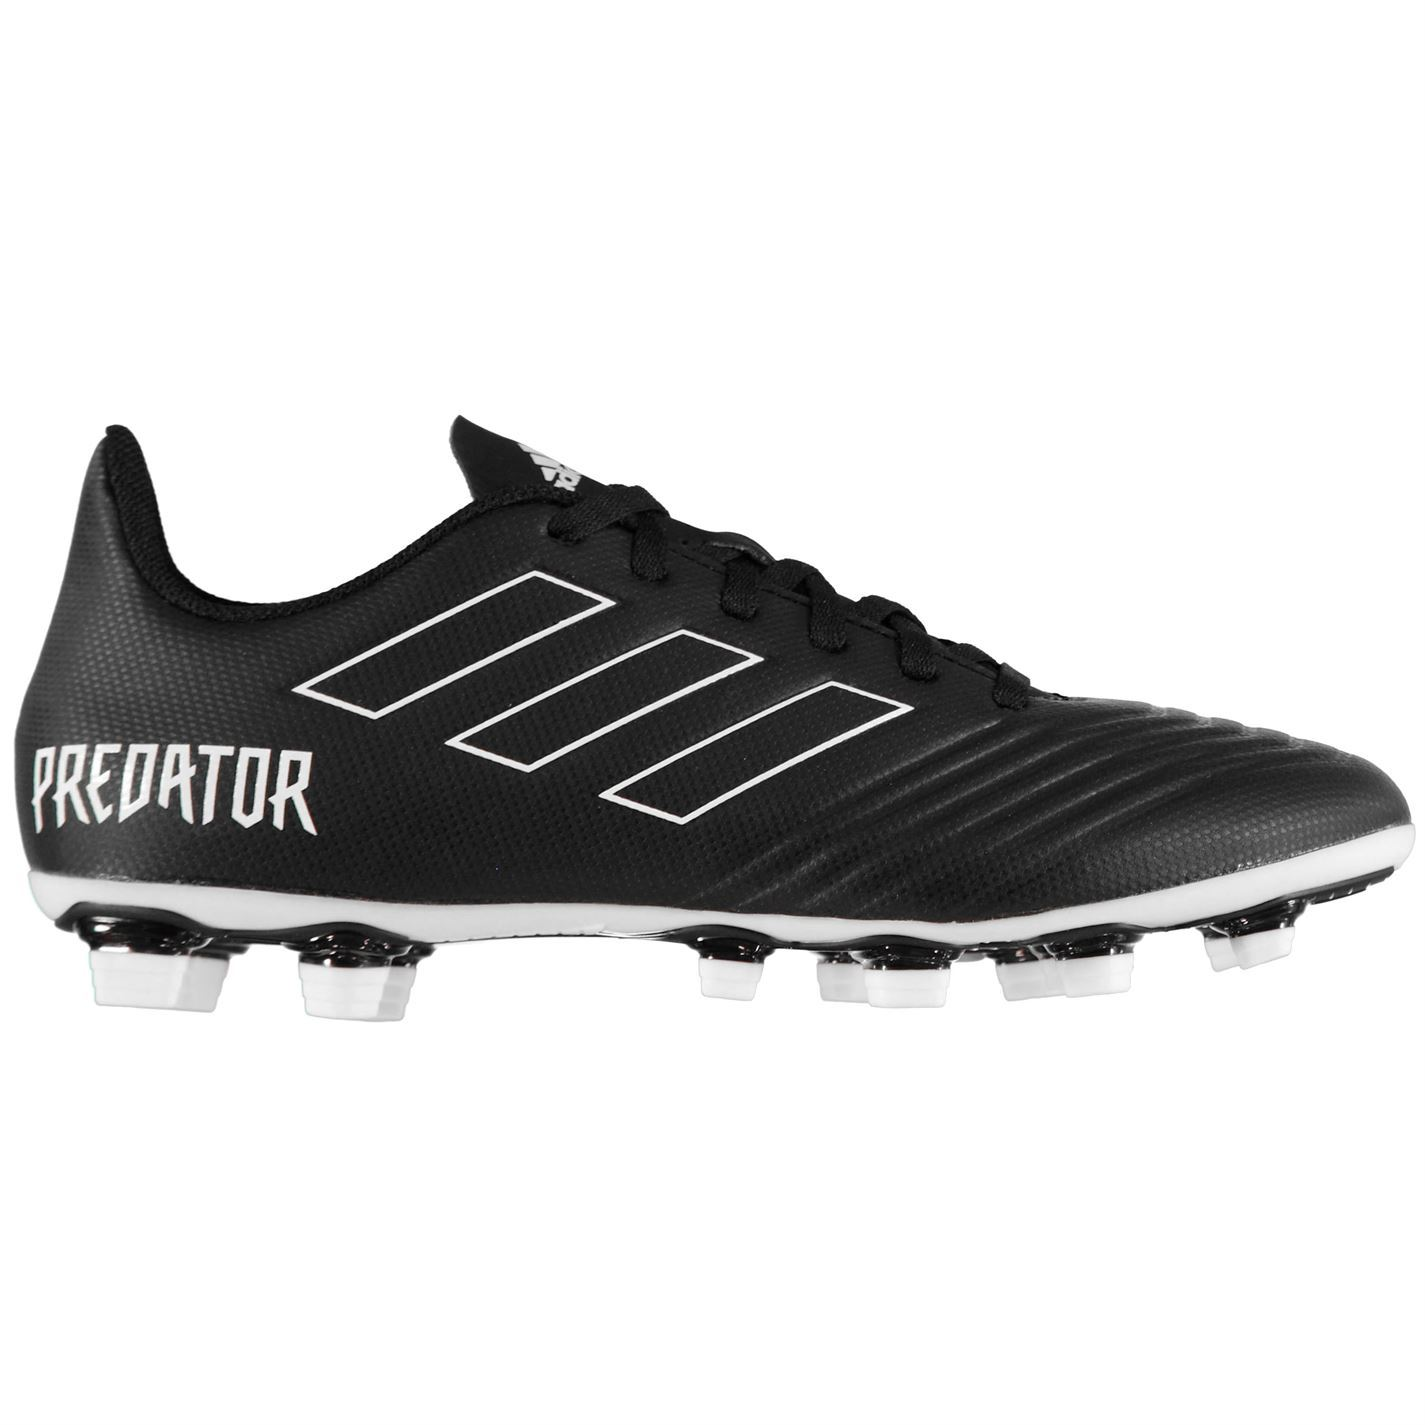 ... adidas Predator 18.4 FG Firm Ground Football Boots Mens Black Soccer  Shoe Cleats ... 495969db6